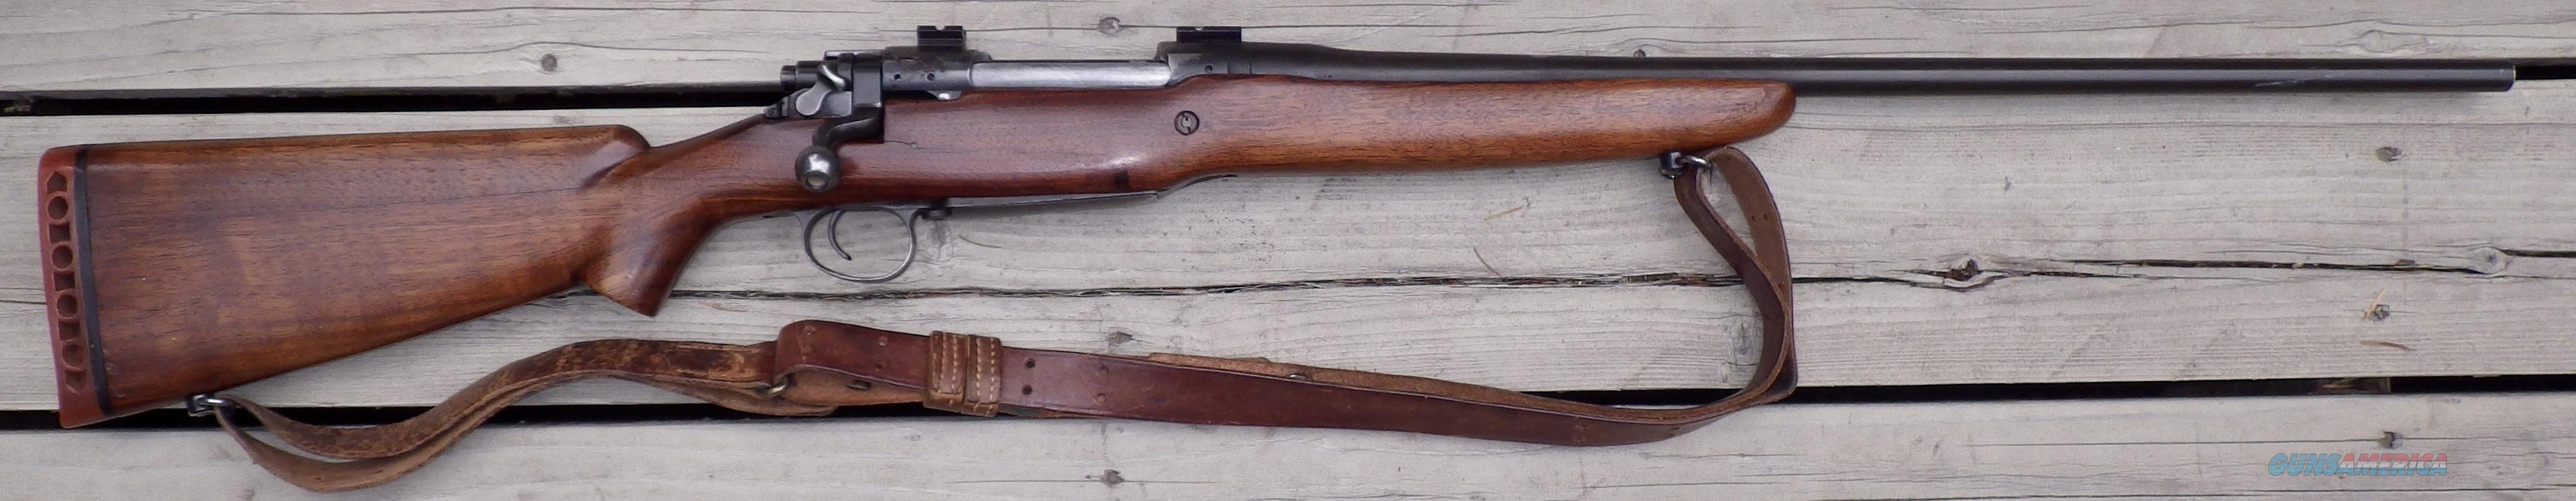 Winchester Enfield 1917 sporterized .30-06 with bases  Guns > Rifles > Enfield Rifle